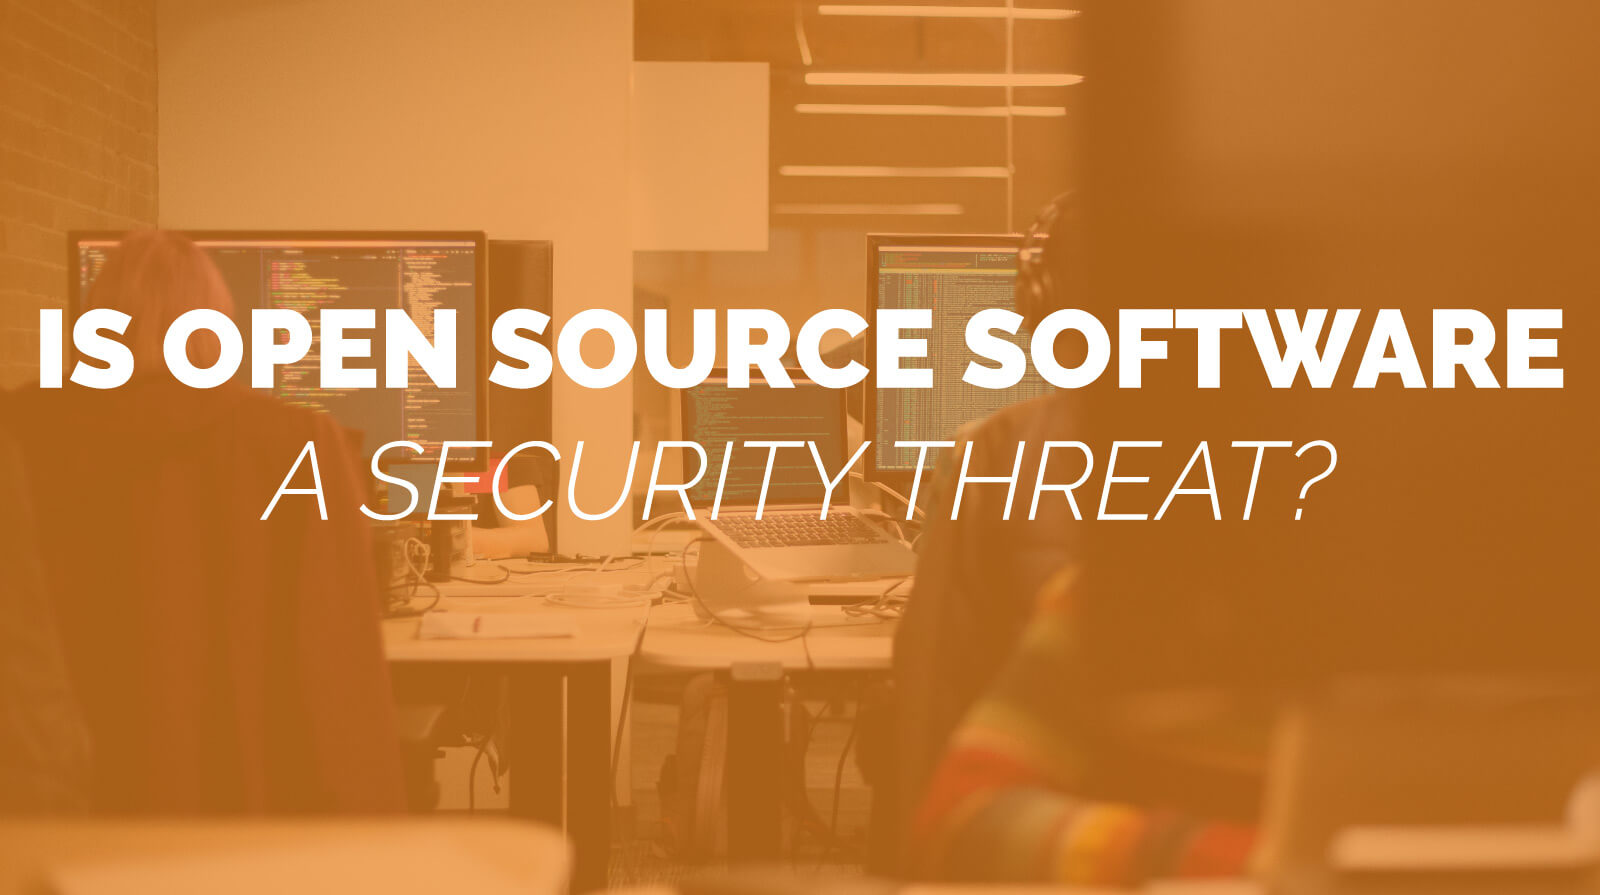 Is Open Source Software a Security Threat